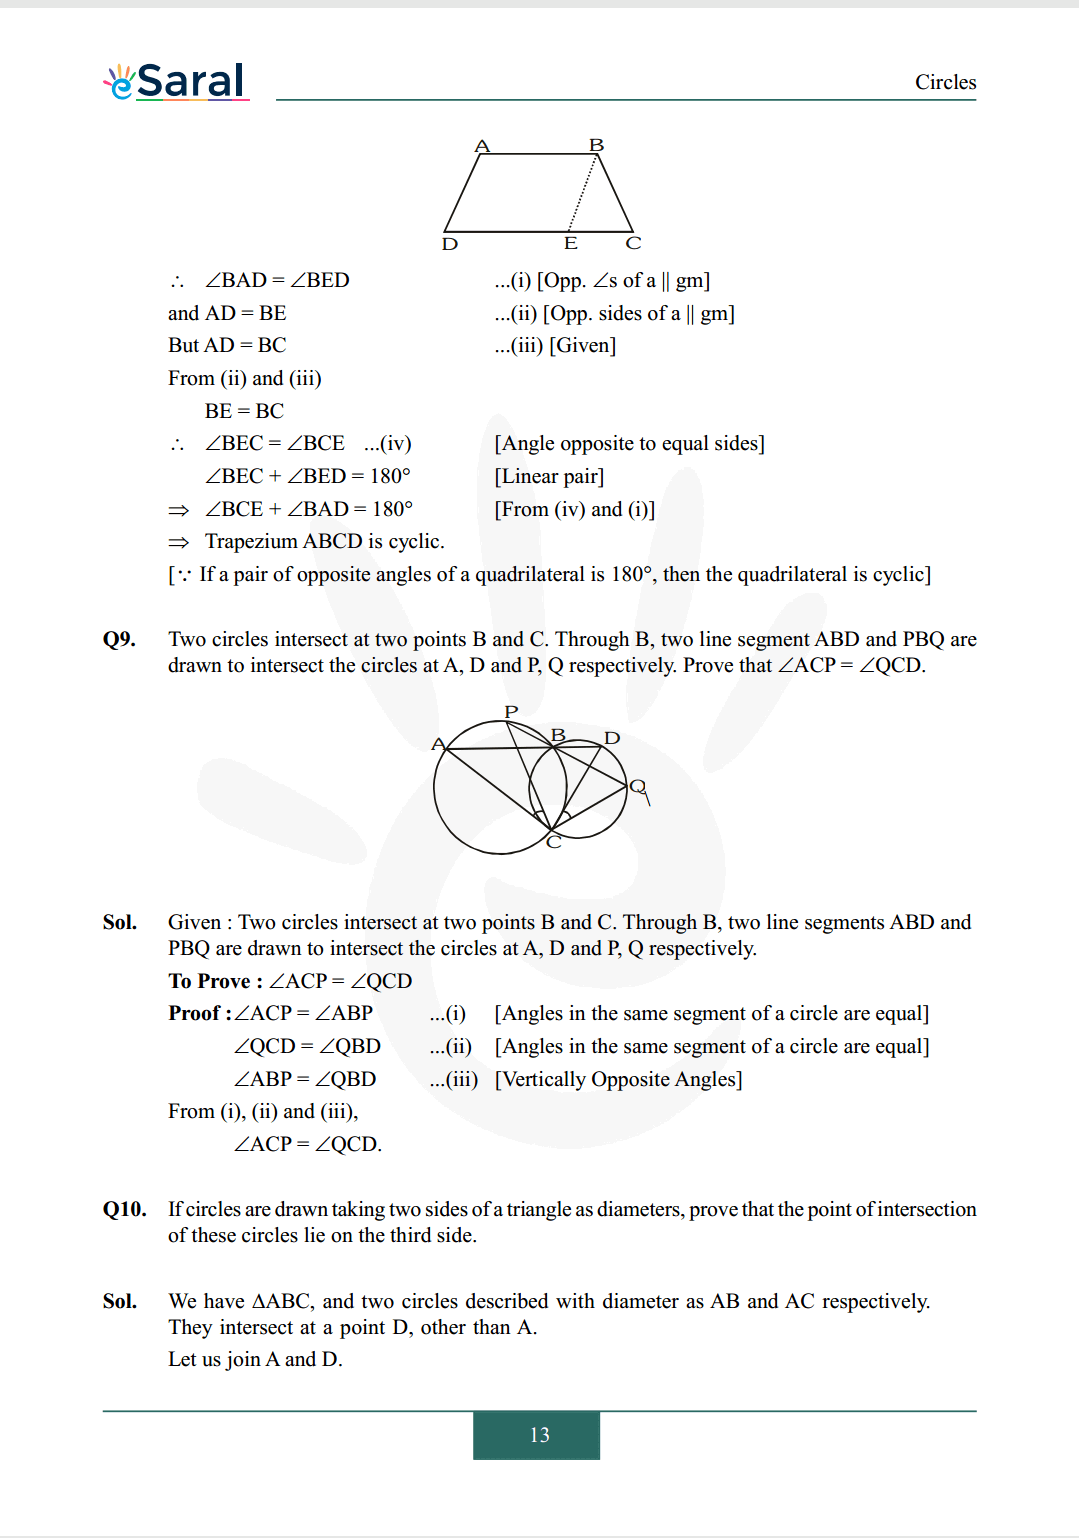 Class 9 maths chapter 10 exercise 10.5 solutions Image 5